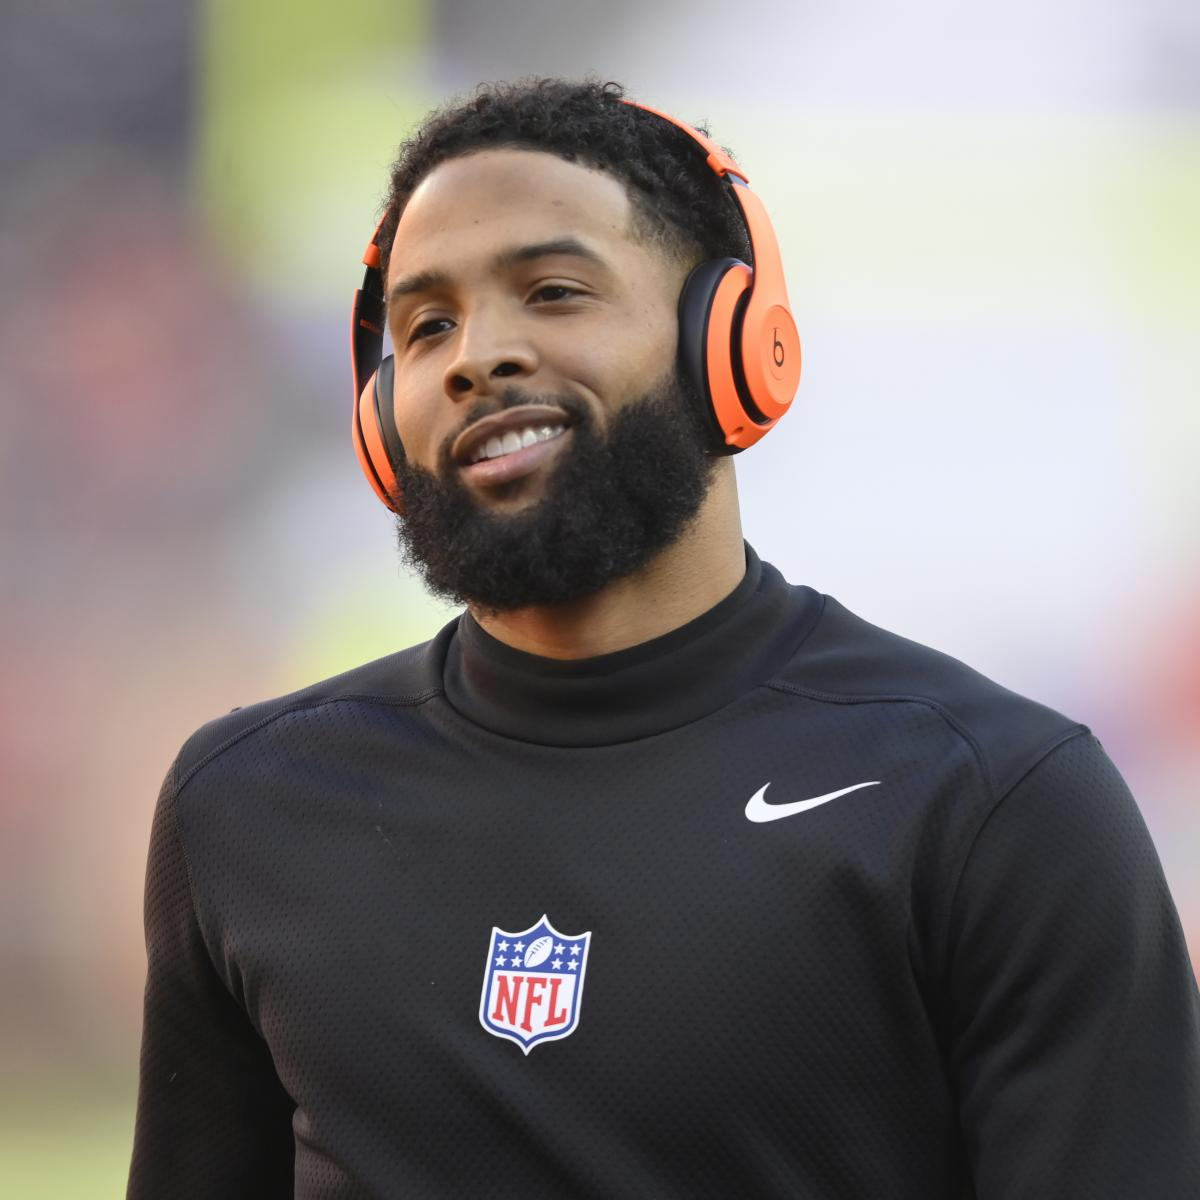 Browns' Odell Beckham Jr. to Meet with HC Kevin Stefanski, Discuss Conduct http://j.mp/2t3EfrM pic.twitter.com/oV1JbnChIQ